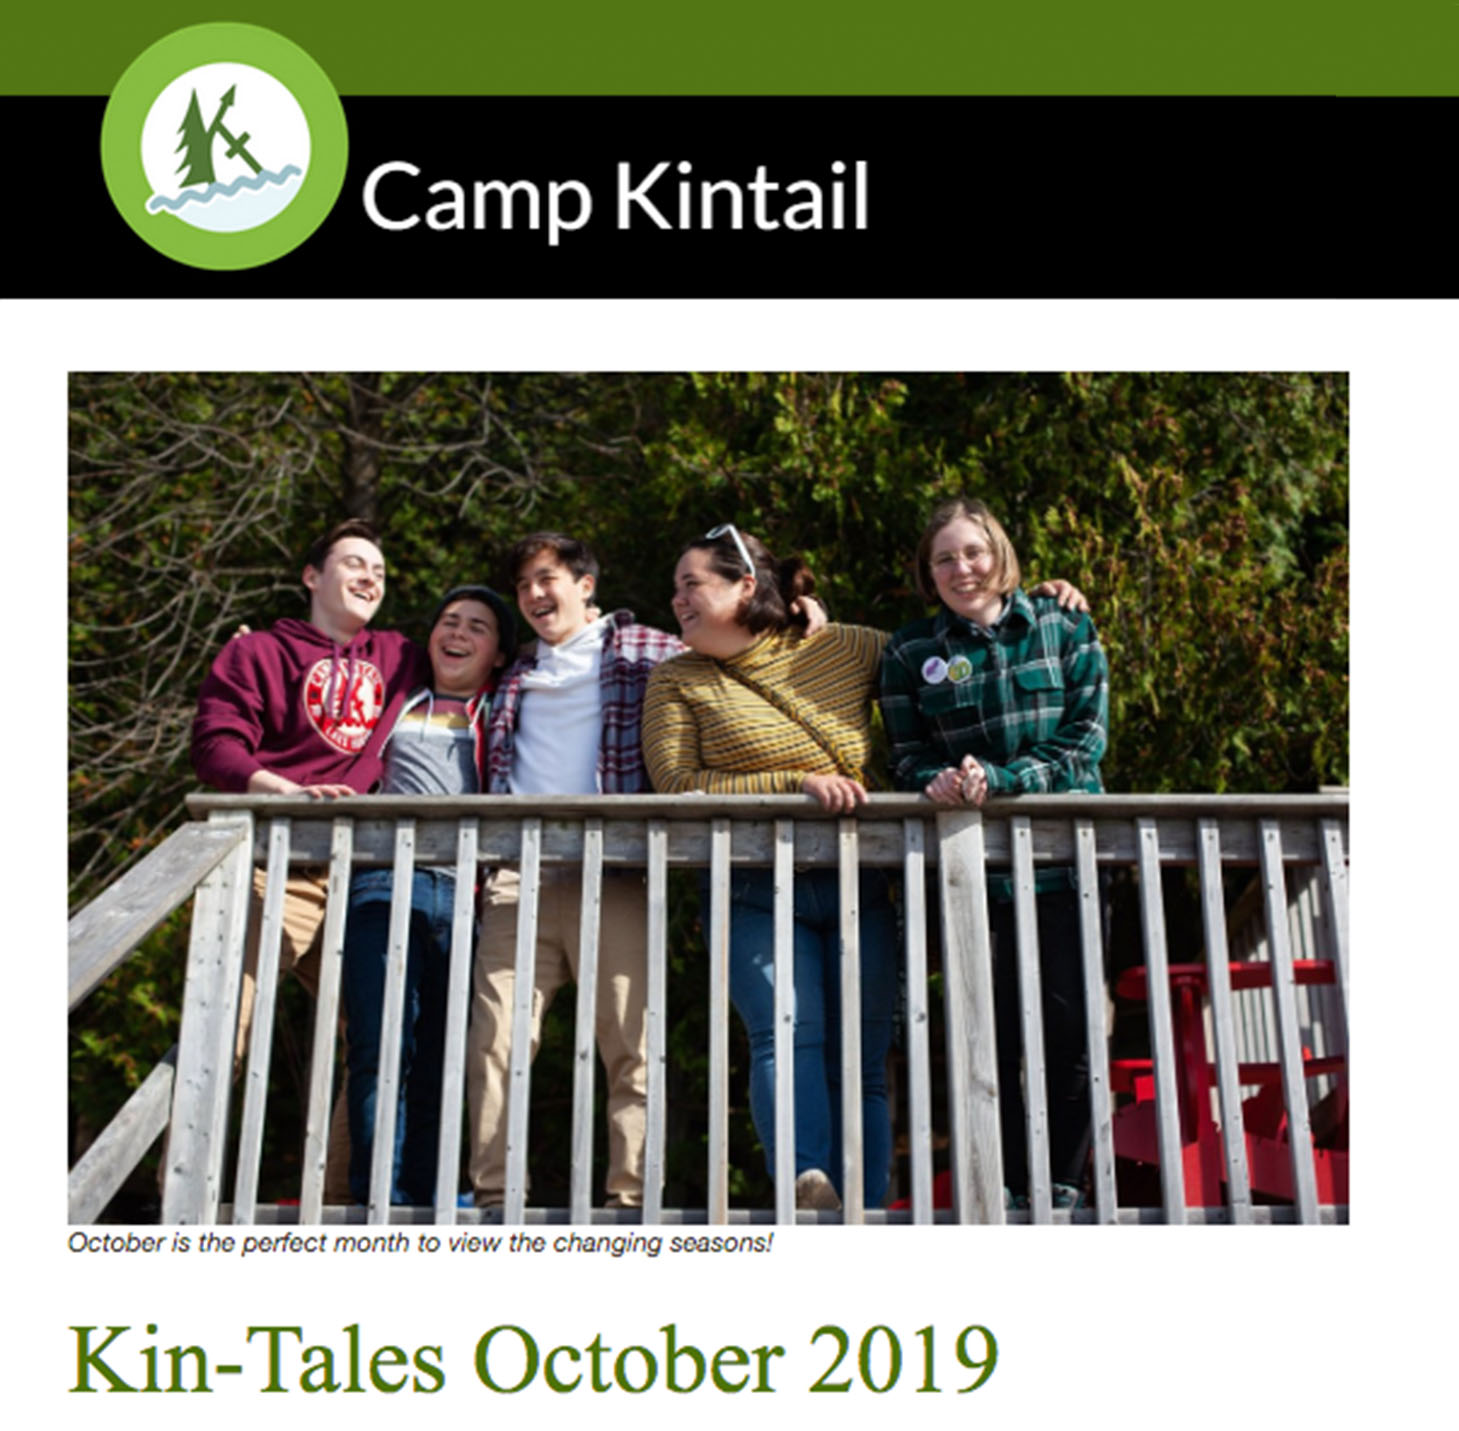 Title text: Kin-Tales October 2019. Image: Sr. High Campers on beach deck.